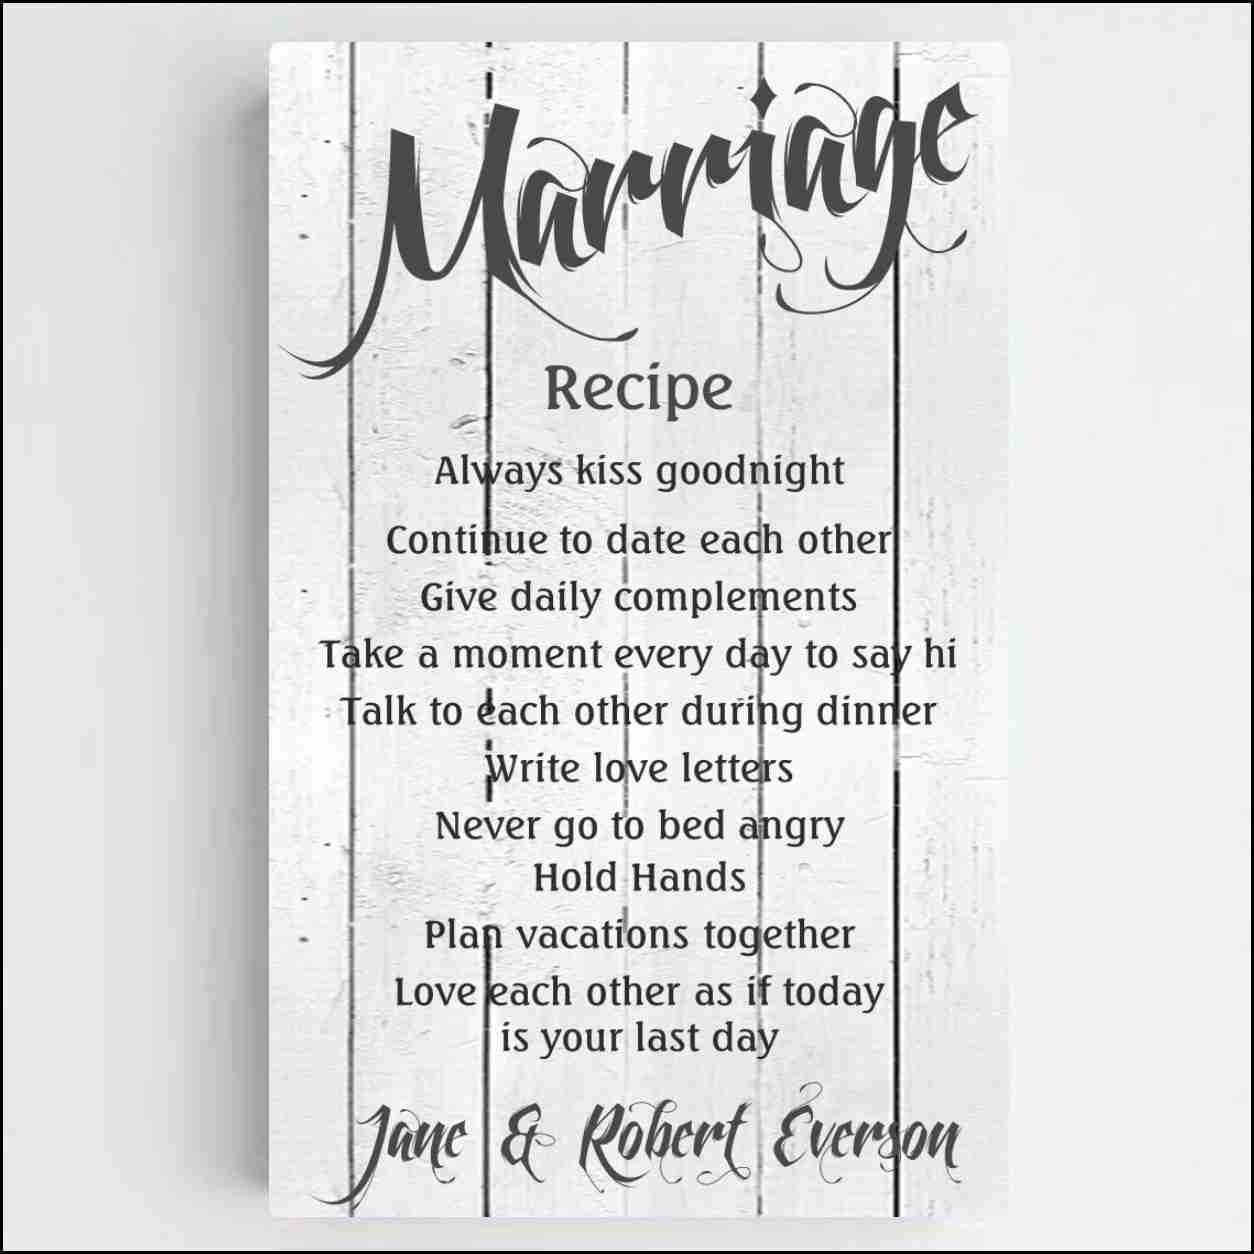 10 Lovable Ideas For 20Th Wedding Anniversary 20th wedding anniversary gift ideas for couple evgplc 2020